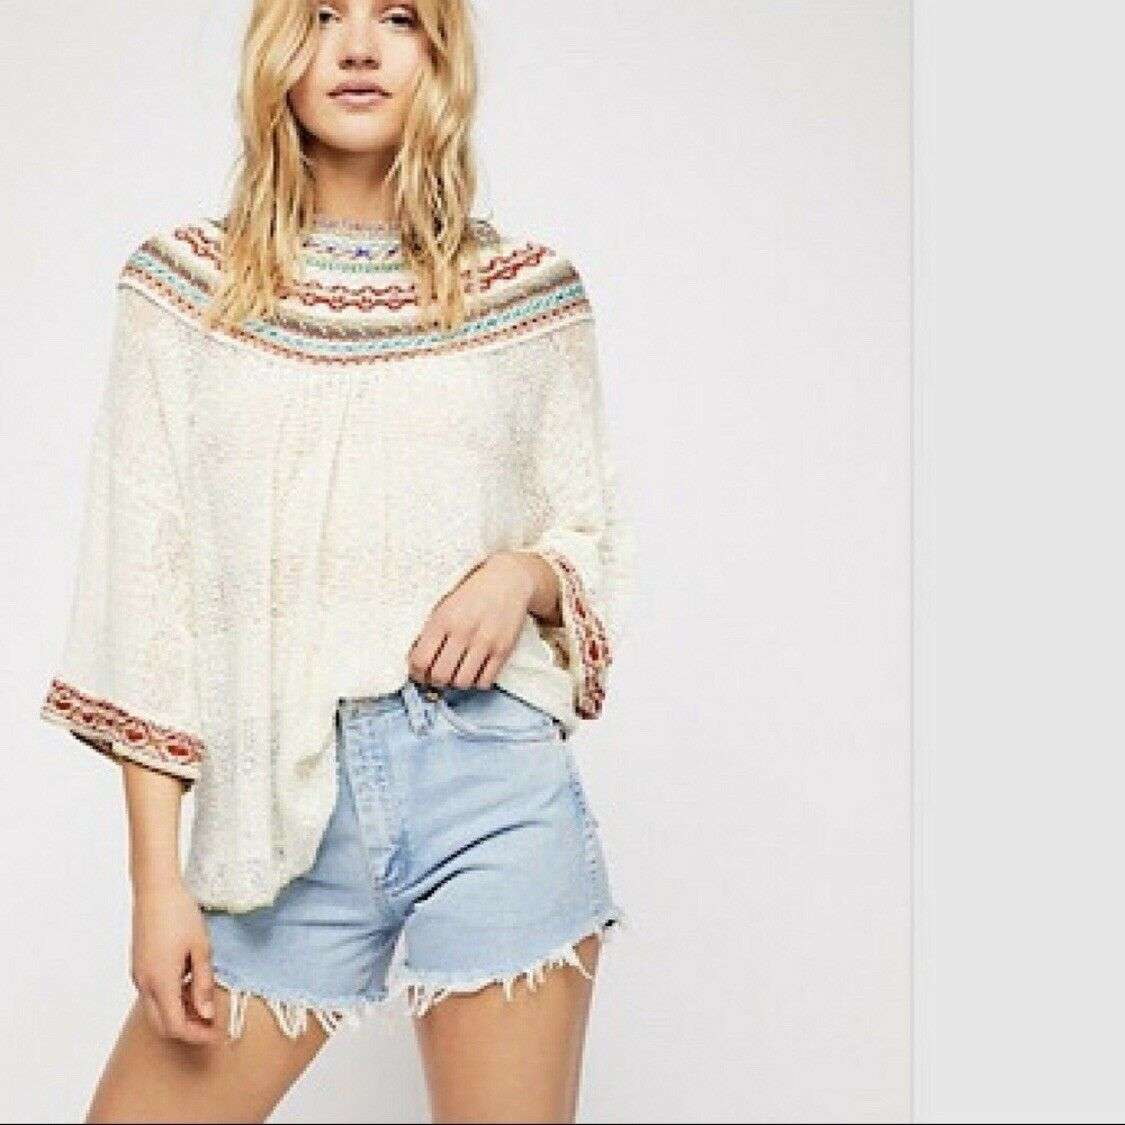 BNWT FREE PEOPLE Vacation Embroidered Sweater Knit Top Ivory Medium M  168 New